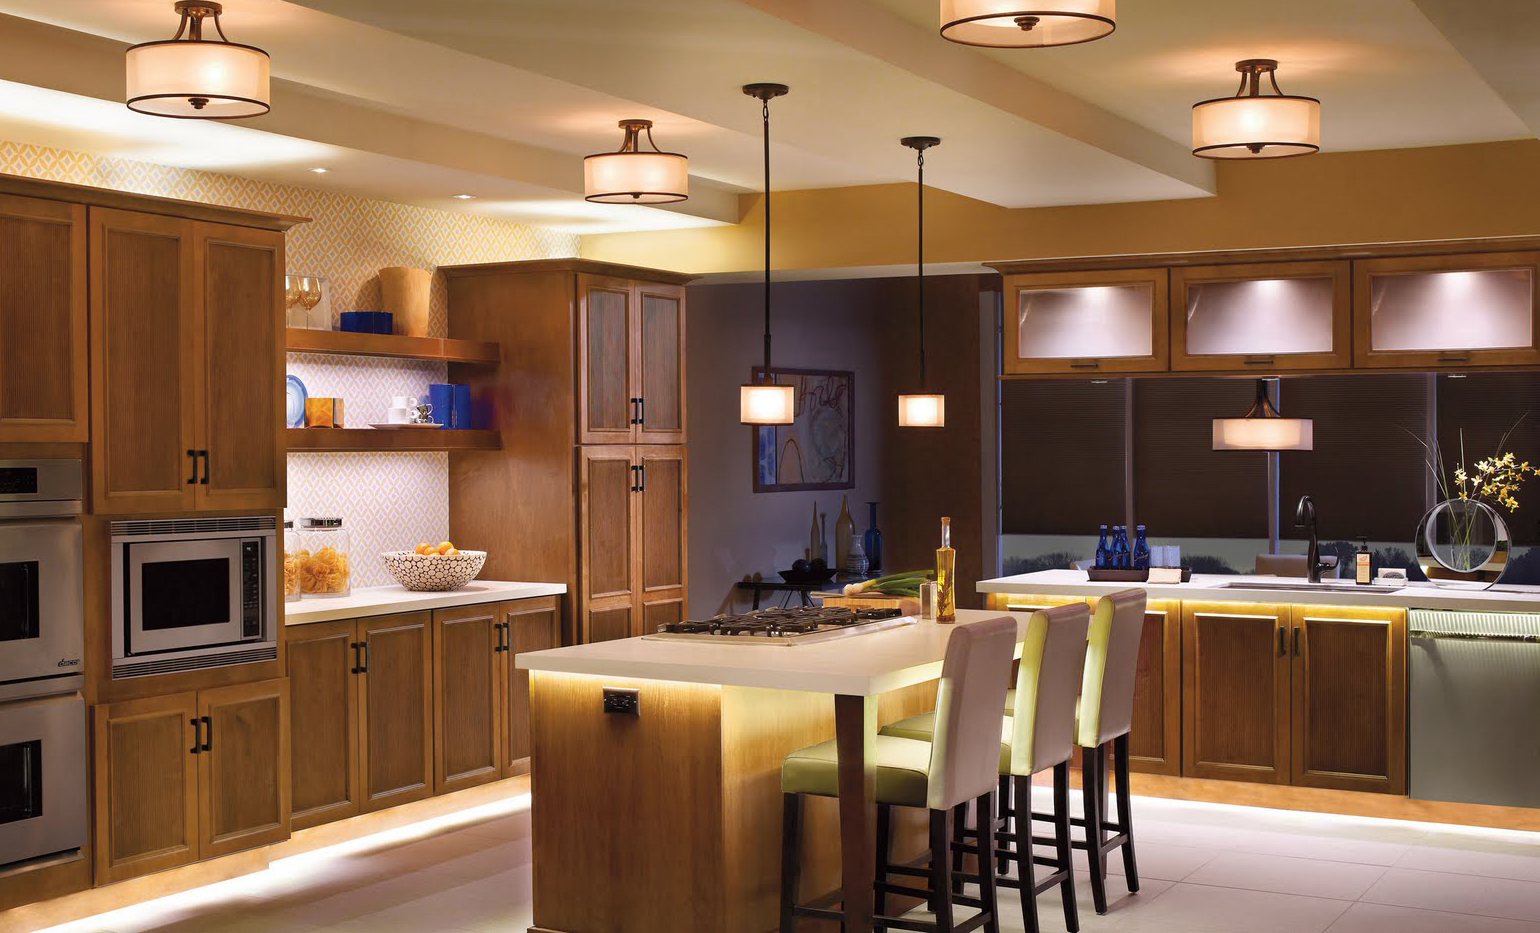 Understanding Kitchen Ceiling Lights - Home Decor by Lulu